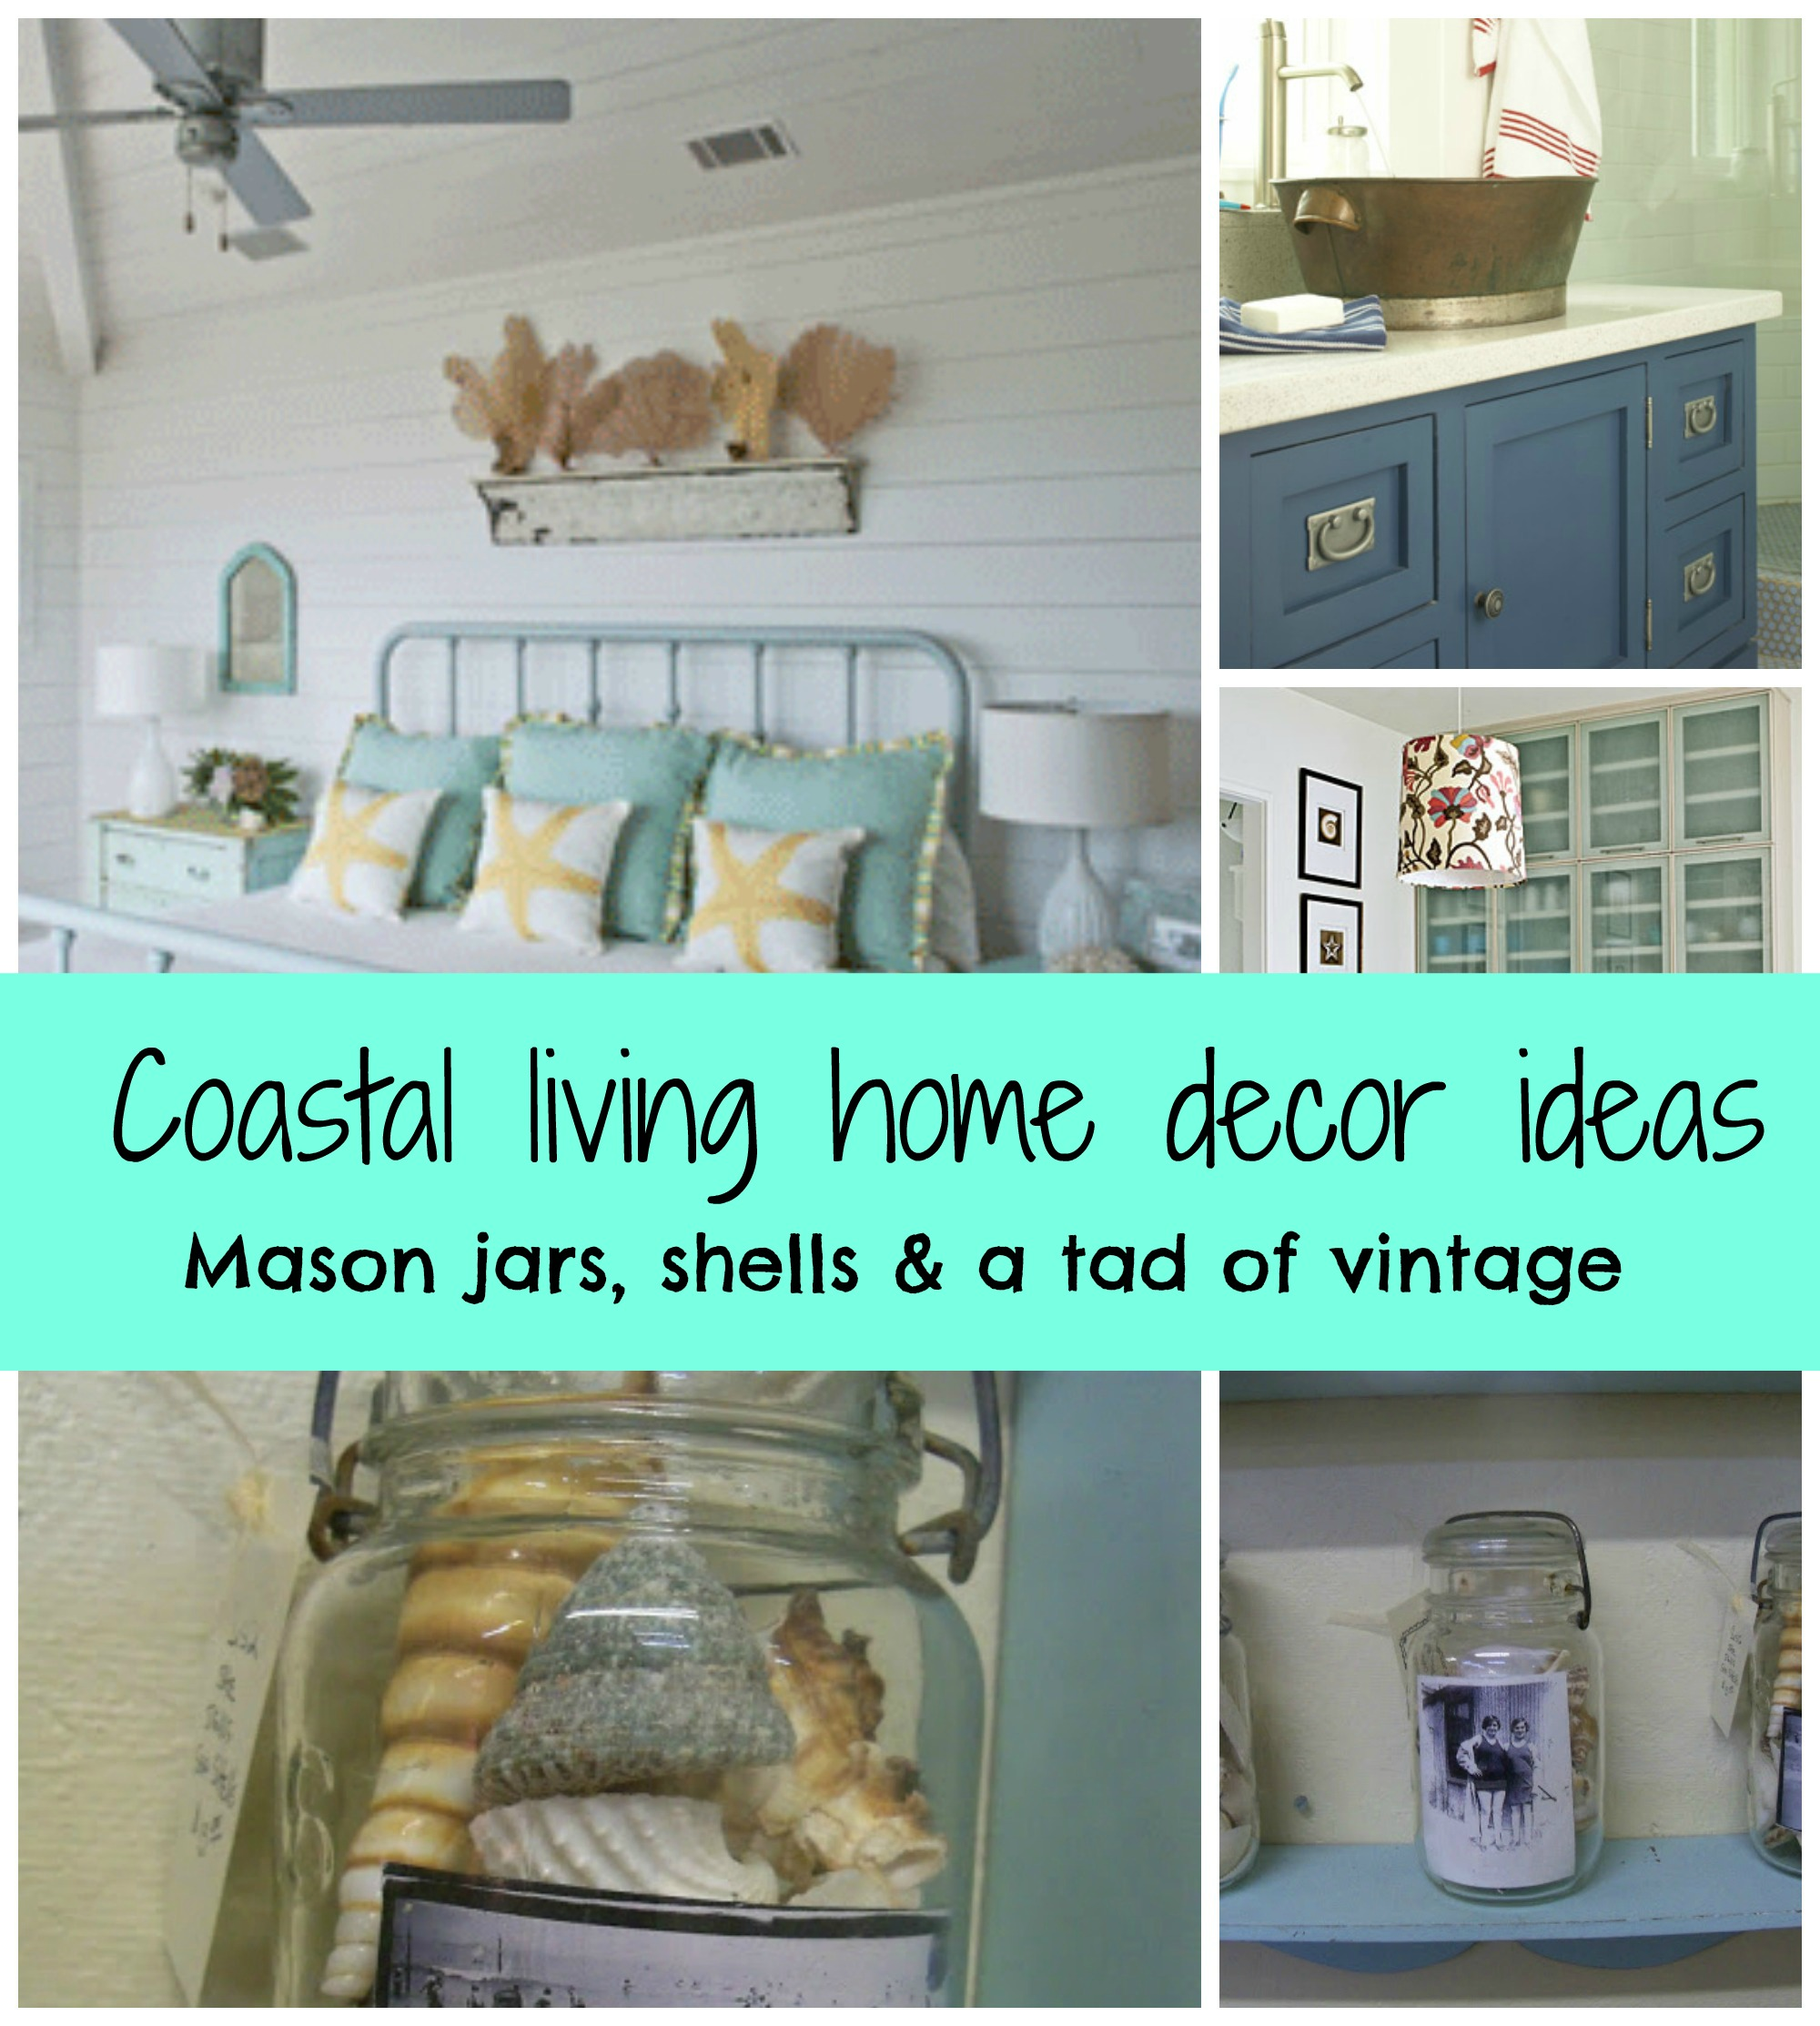 Coastal living nifty decor ideas debbiedoos - Home interiors decorating ideas ...